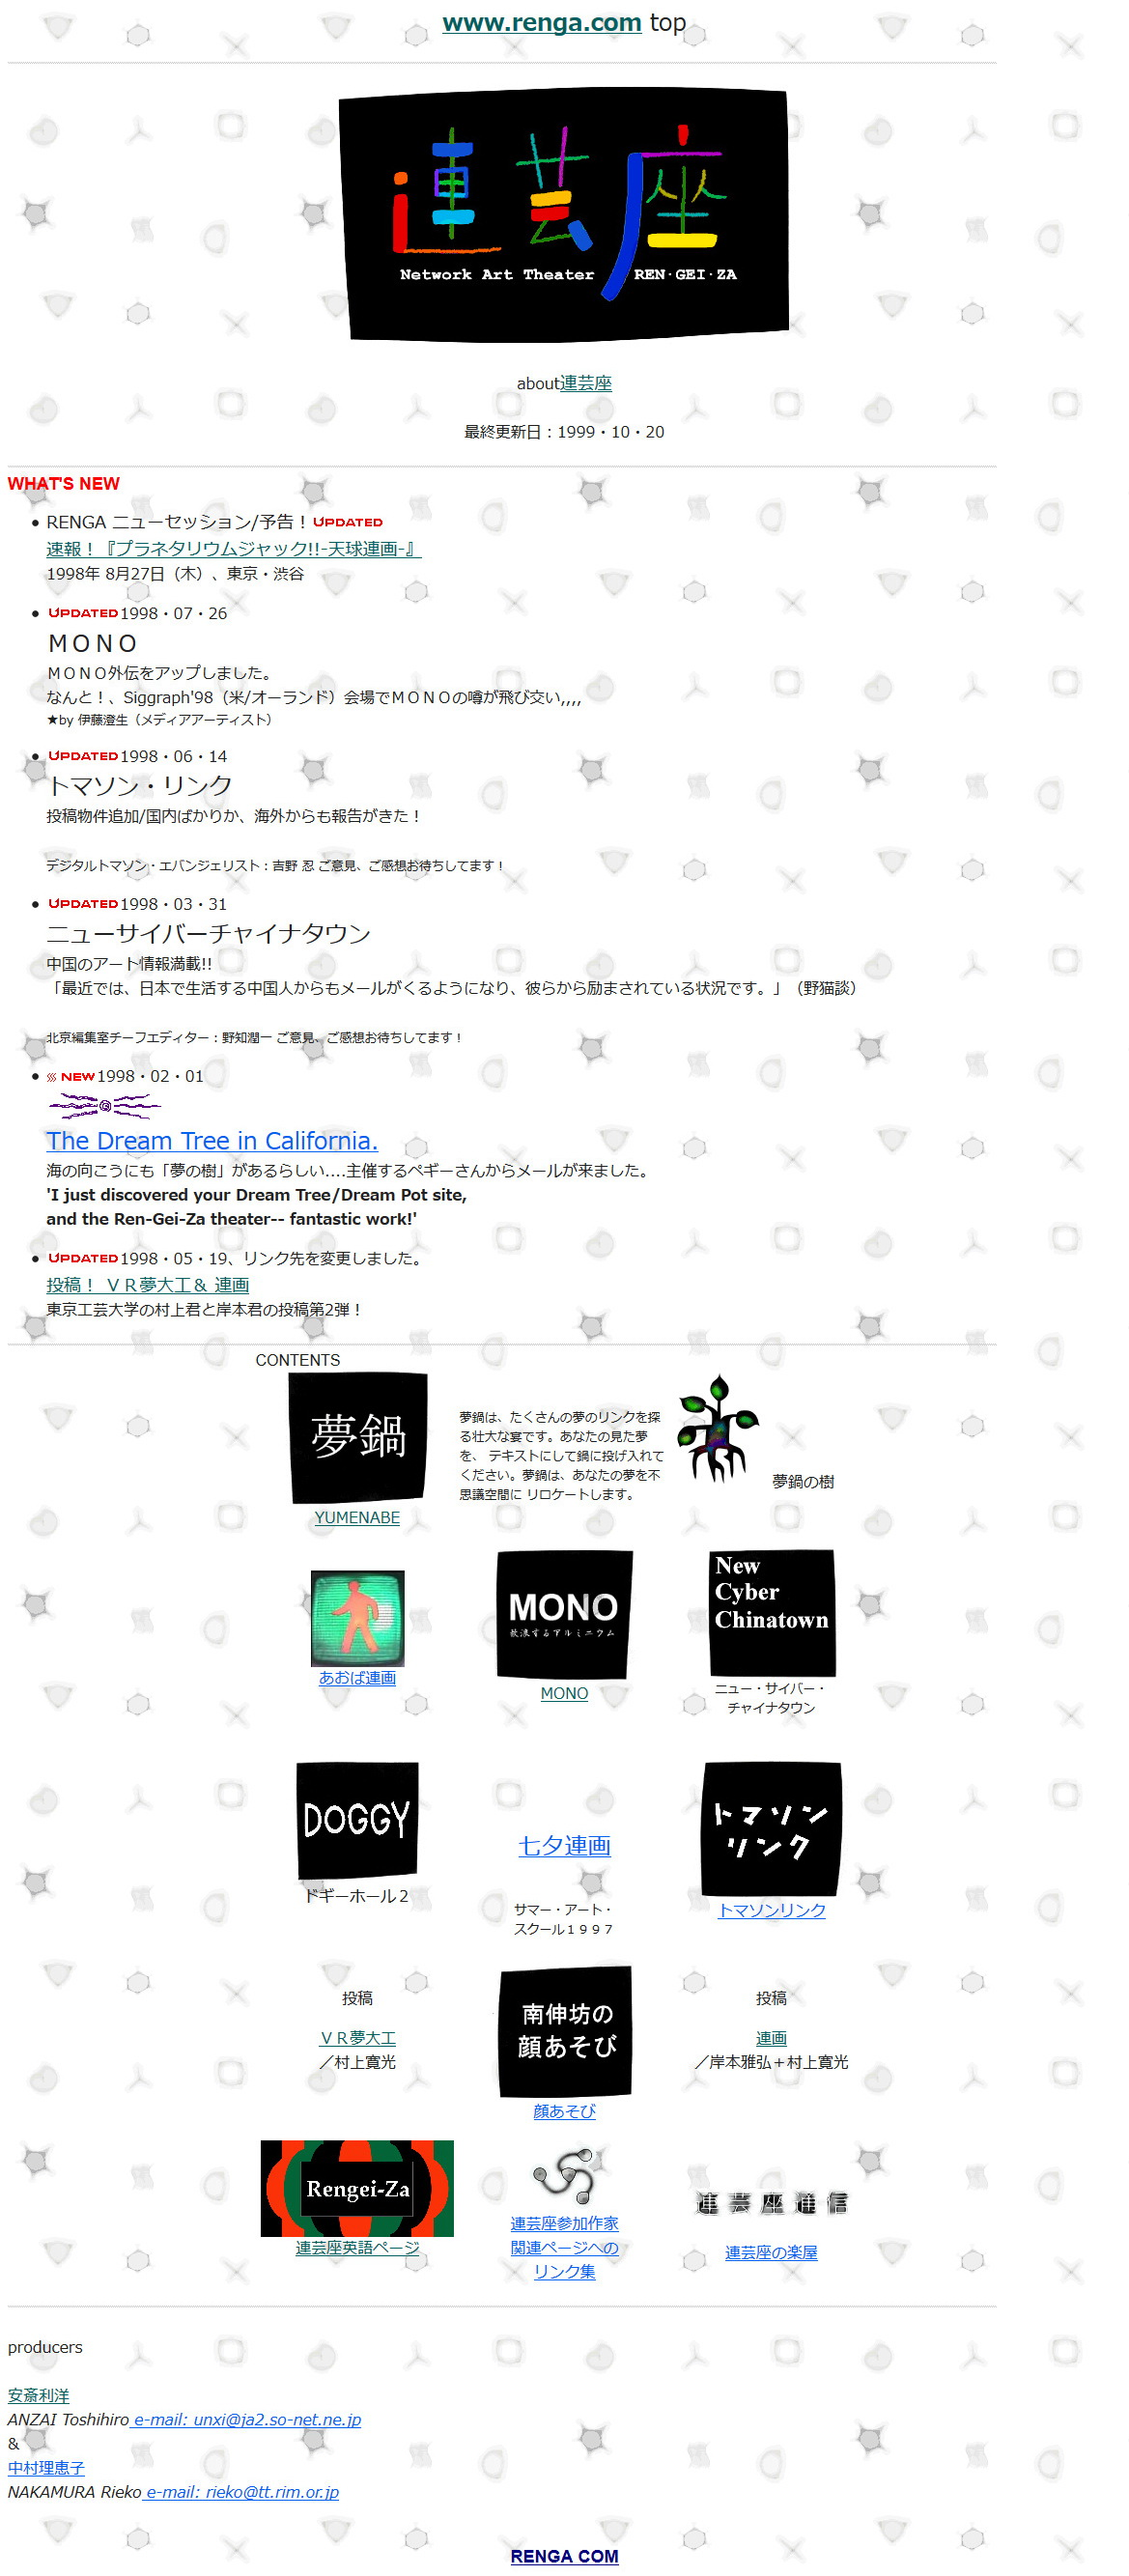 連芸座 Network Art Theater